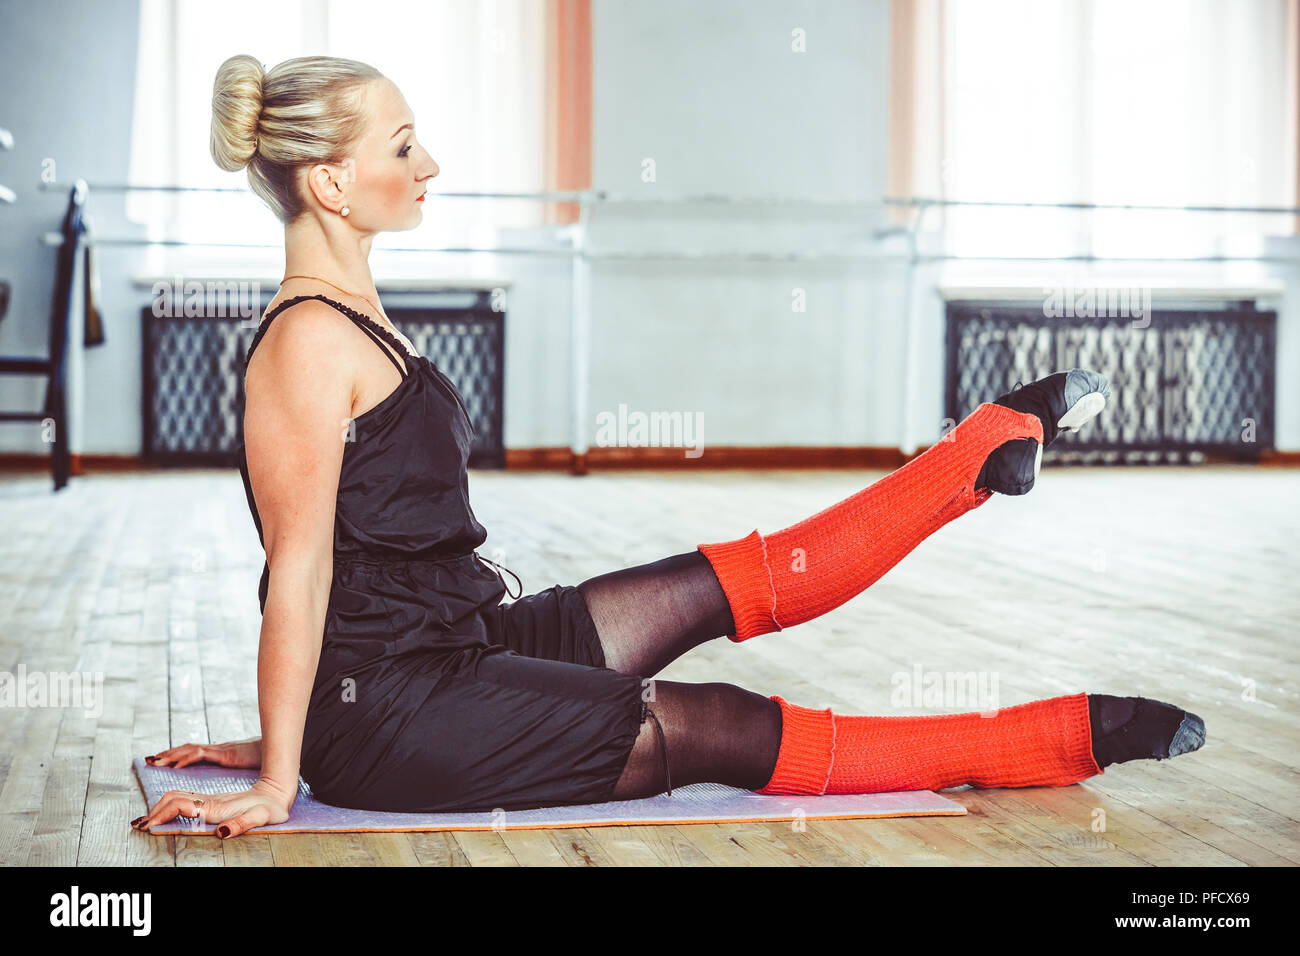 the dancer makes the warm-up in the ballet hall - Stock Image